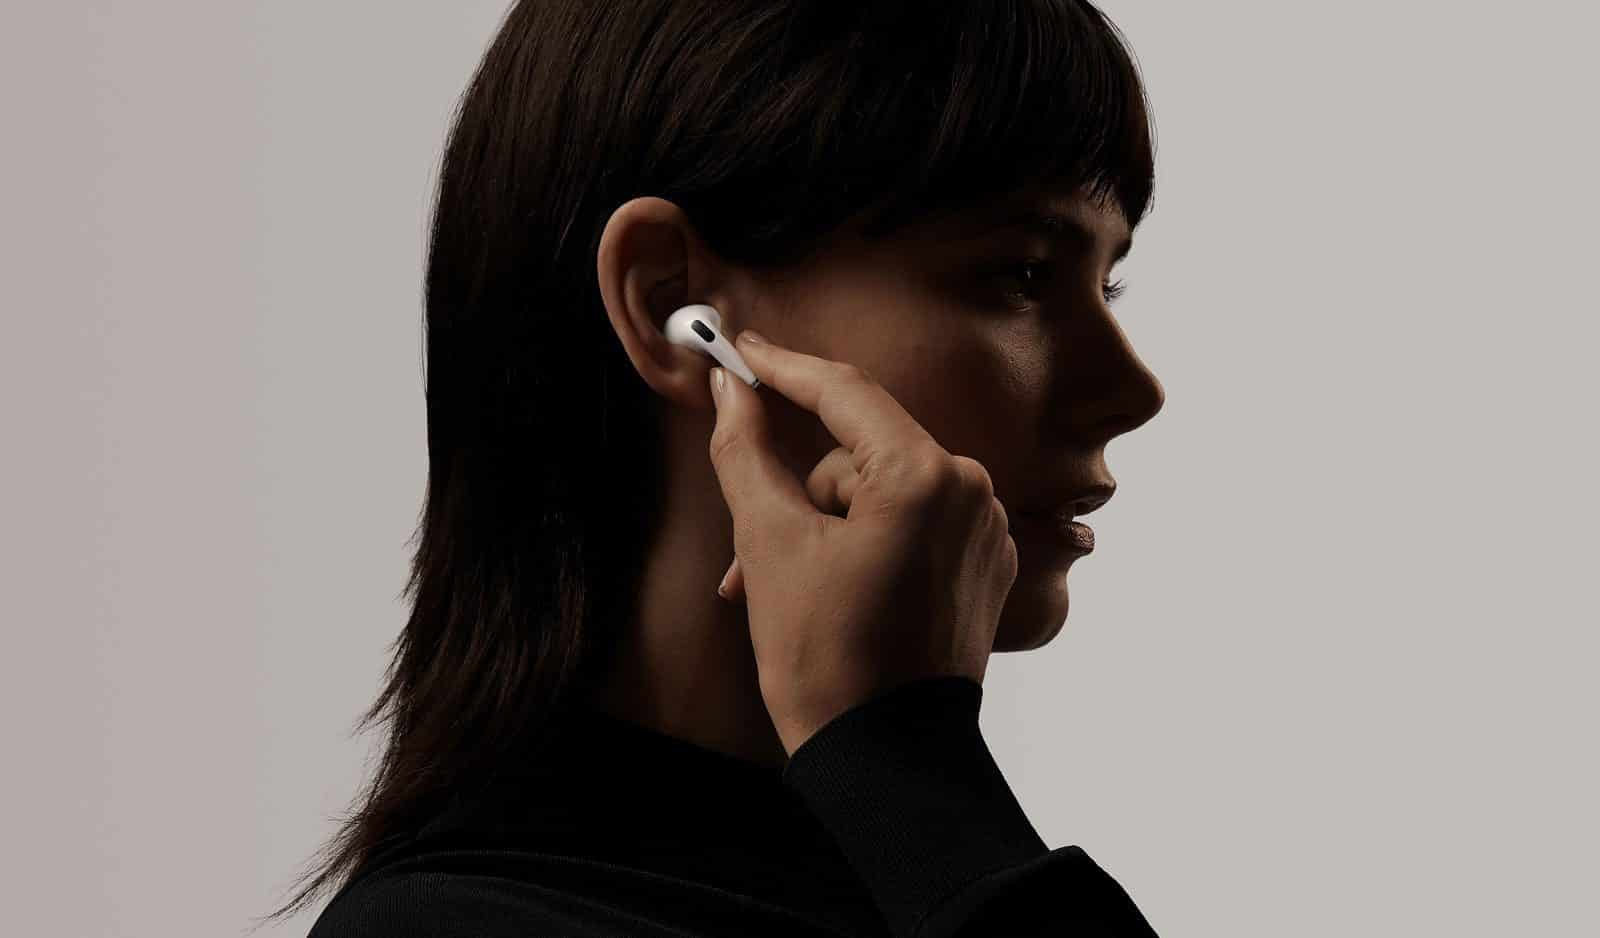 Is Apple Airpods Pro Worth It in 2020?